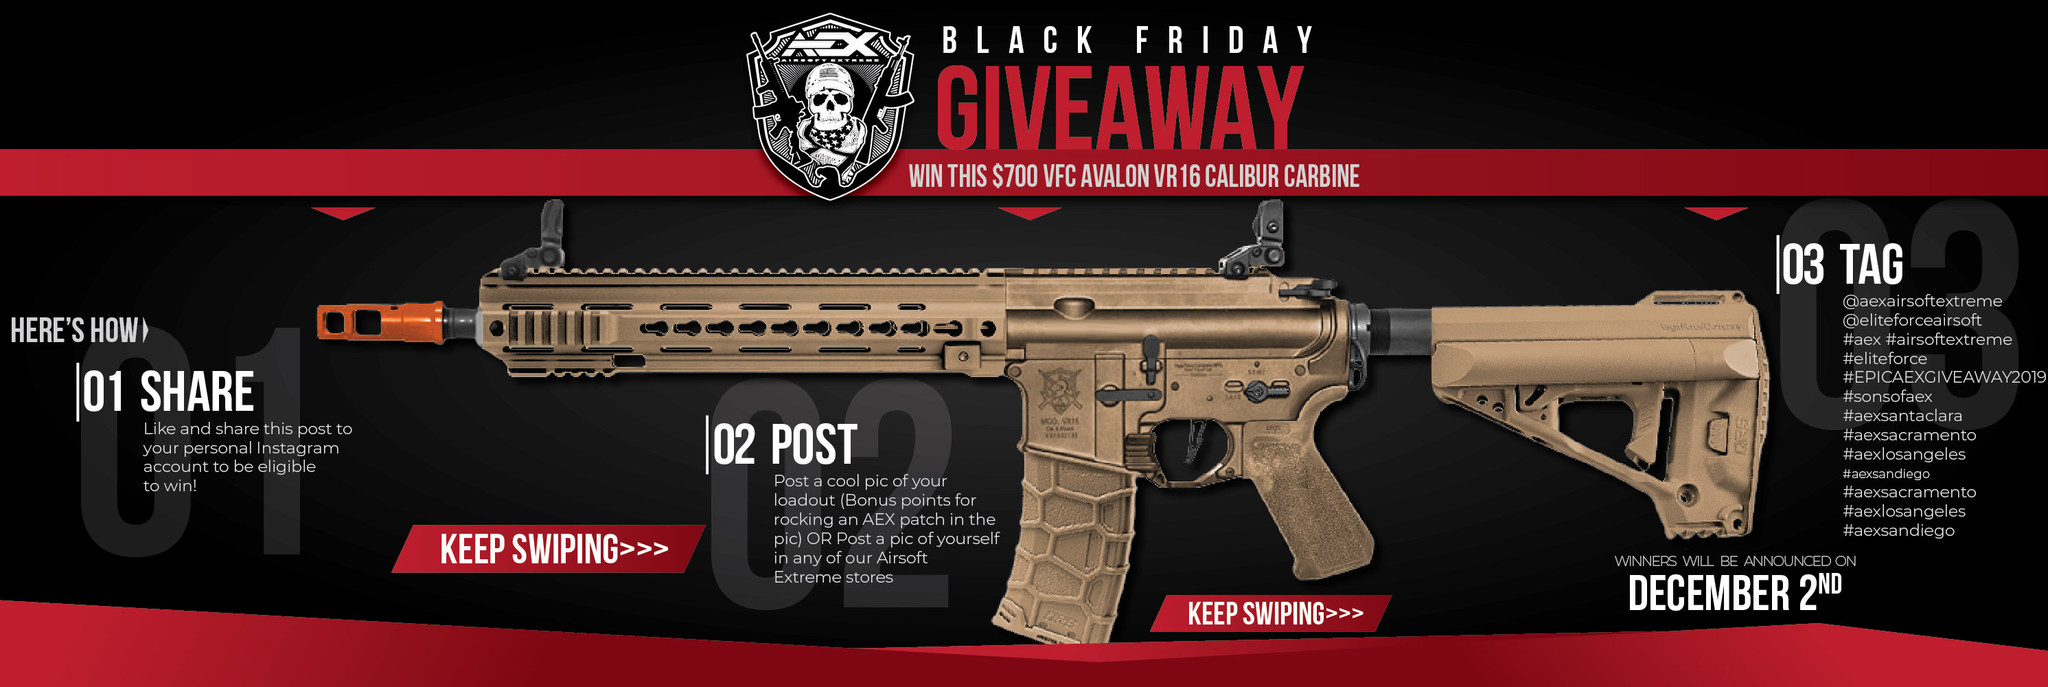 Black Friday Instagram Give Away Win A Custom 700 Vfc Avalon Vr16 Calibur Carbine Airsoft Extreme